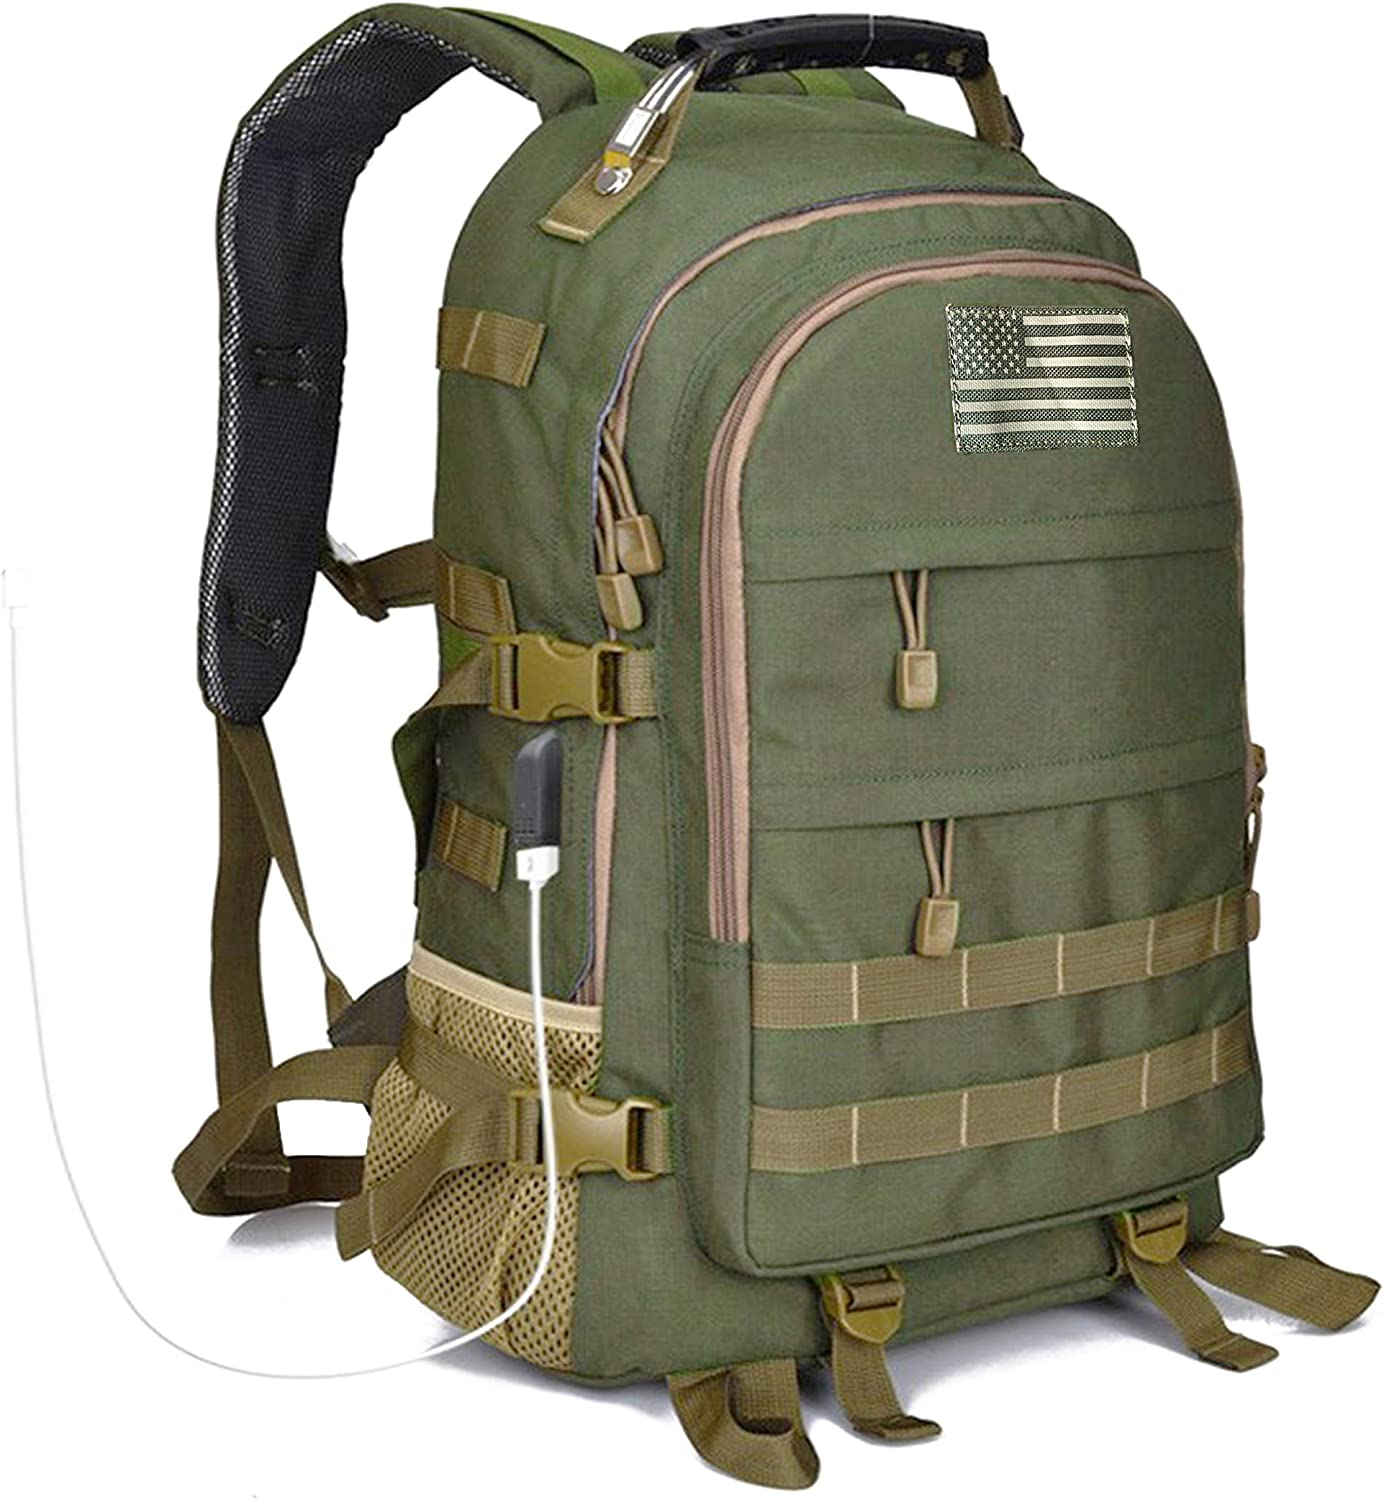 Military Army Tactical Hunting Backpack for Men, Outdoor molle bag Camo Hiking Rucksack, USB Charging Port